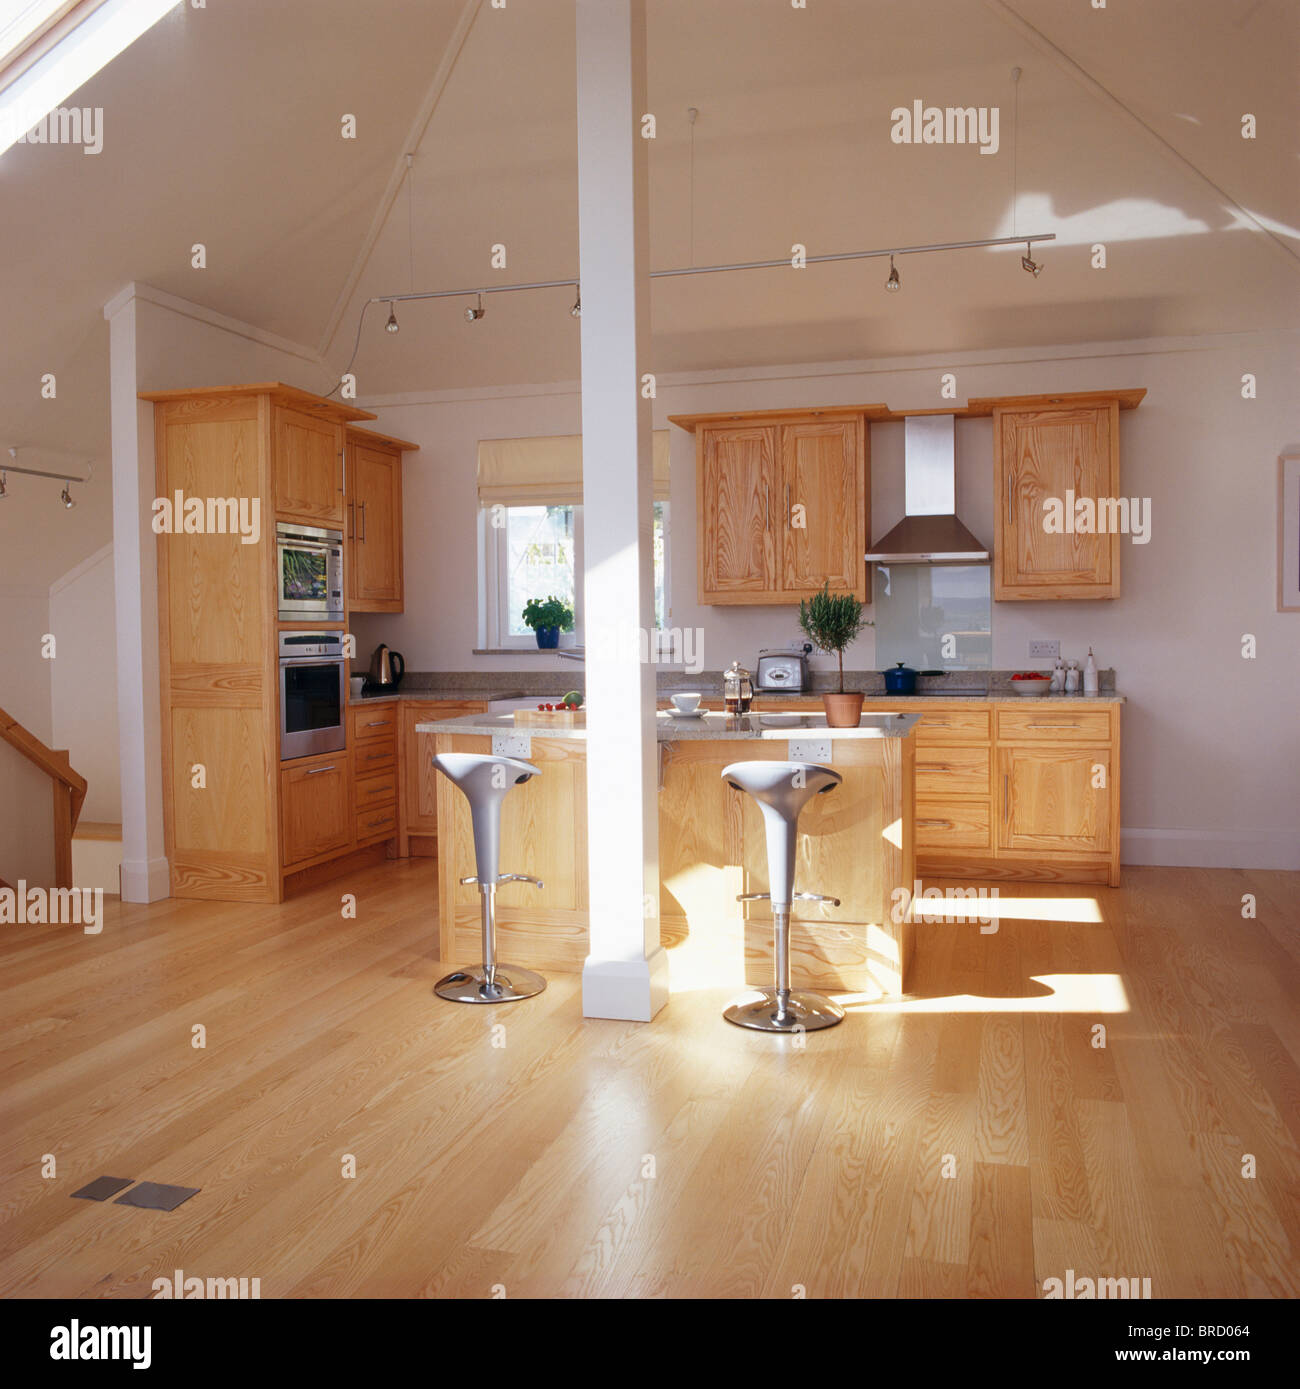 Stock Photo   Wooden Flooring And Apex Ceiling In Modern Loft Conversion  Kitchen With With Pale Wood Fitted Units